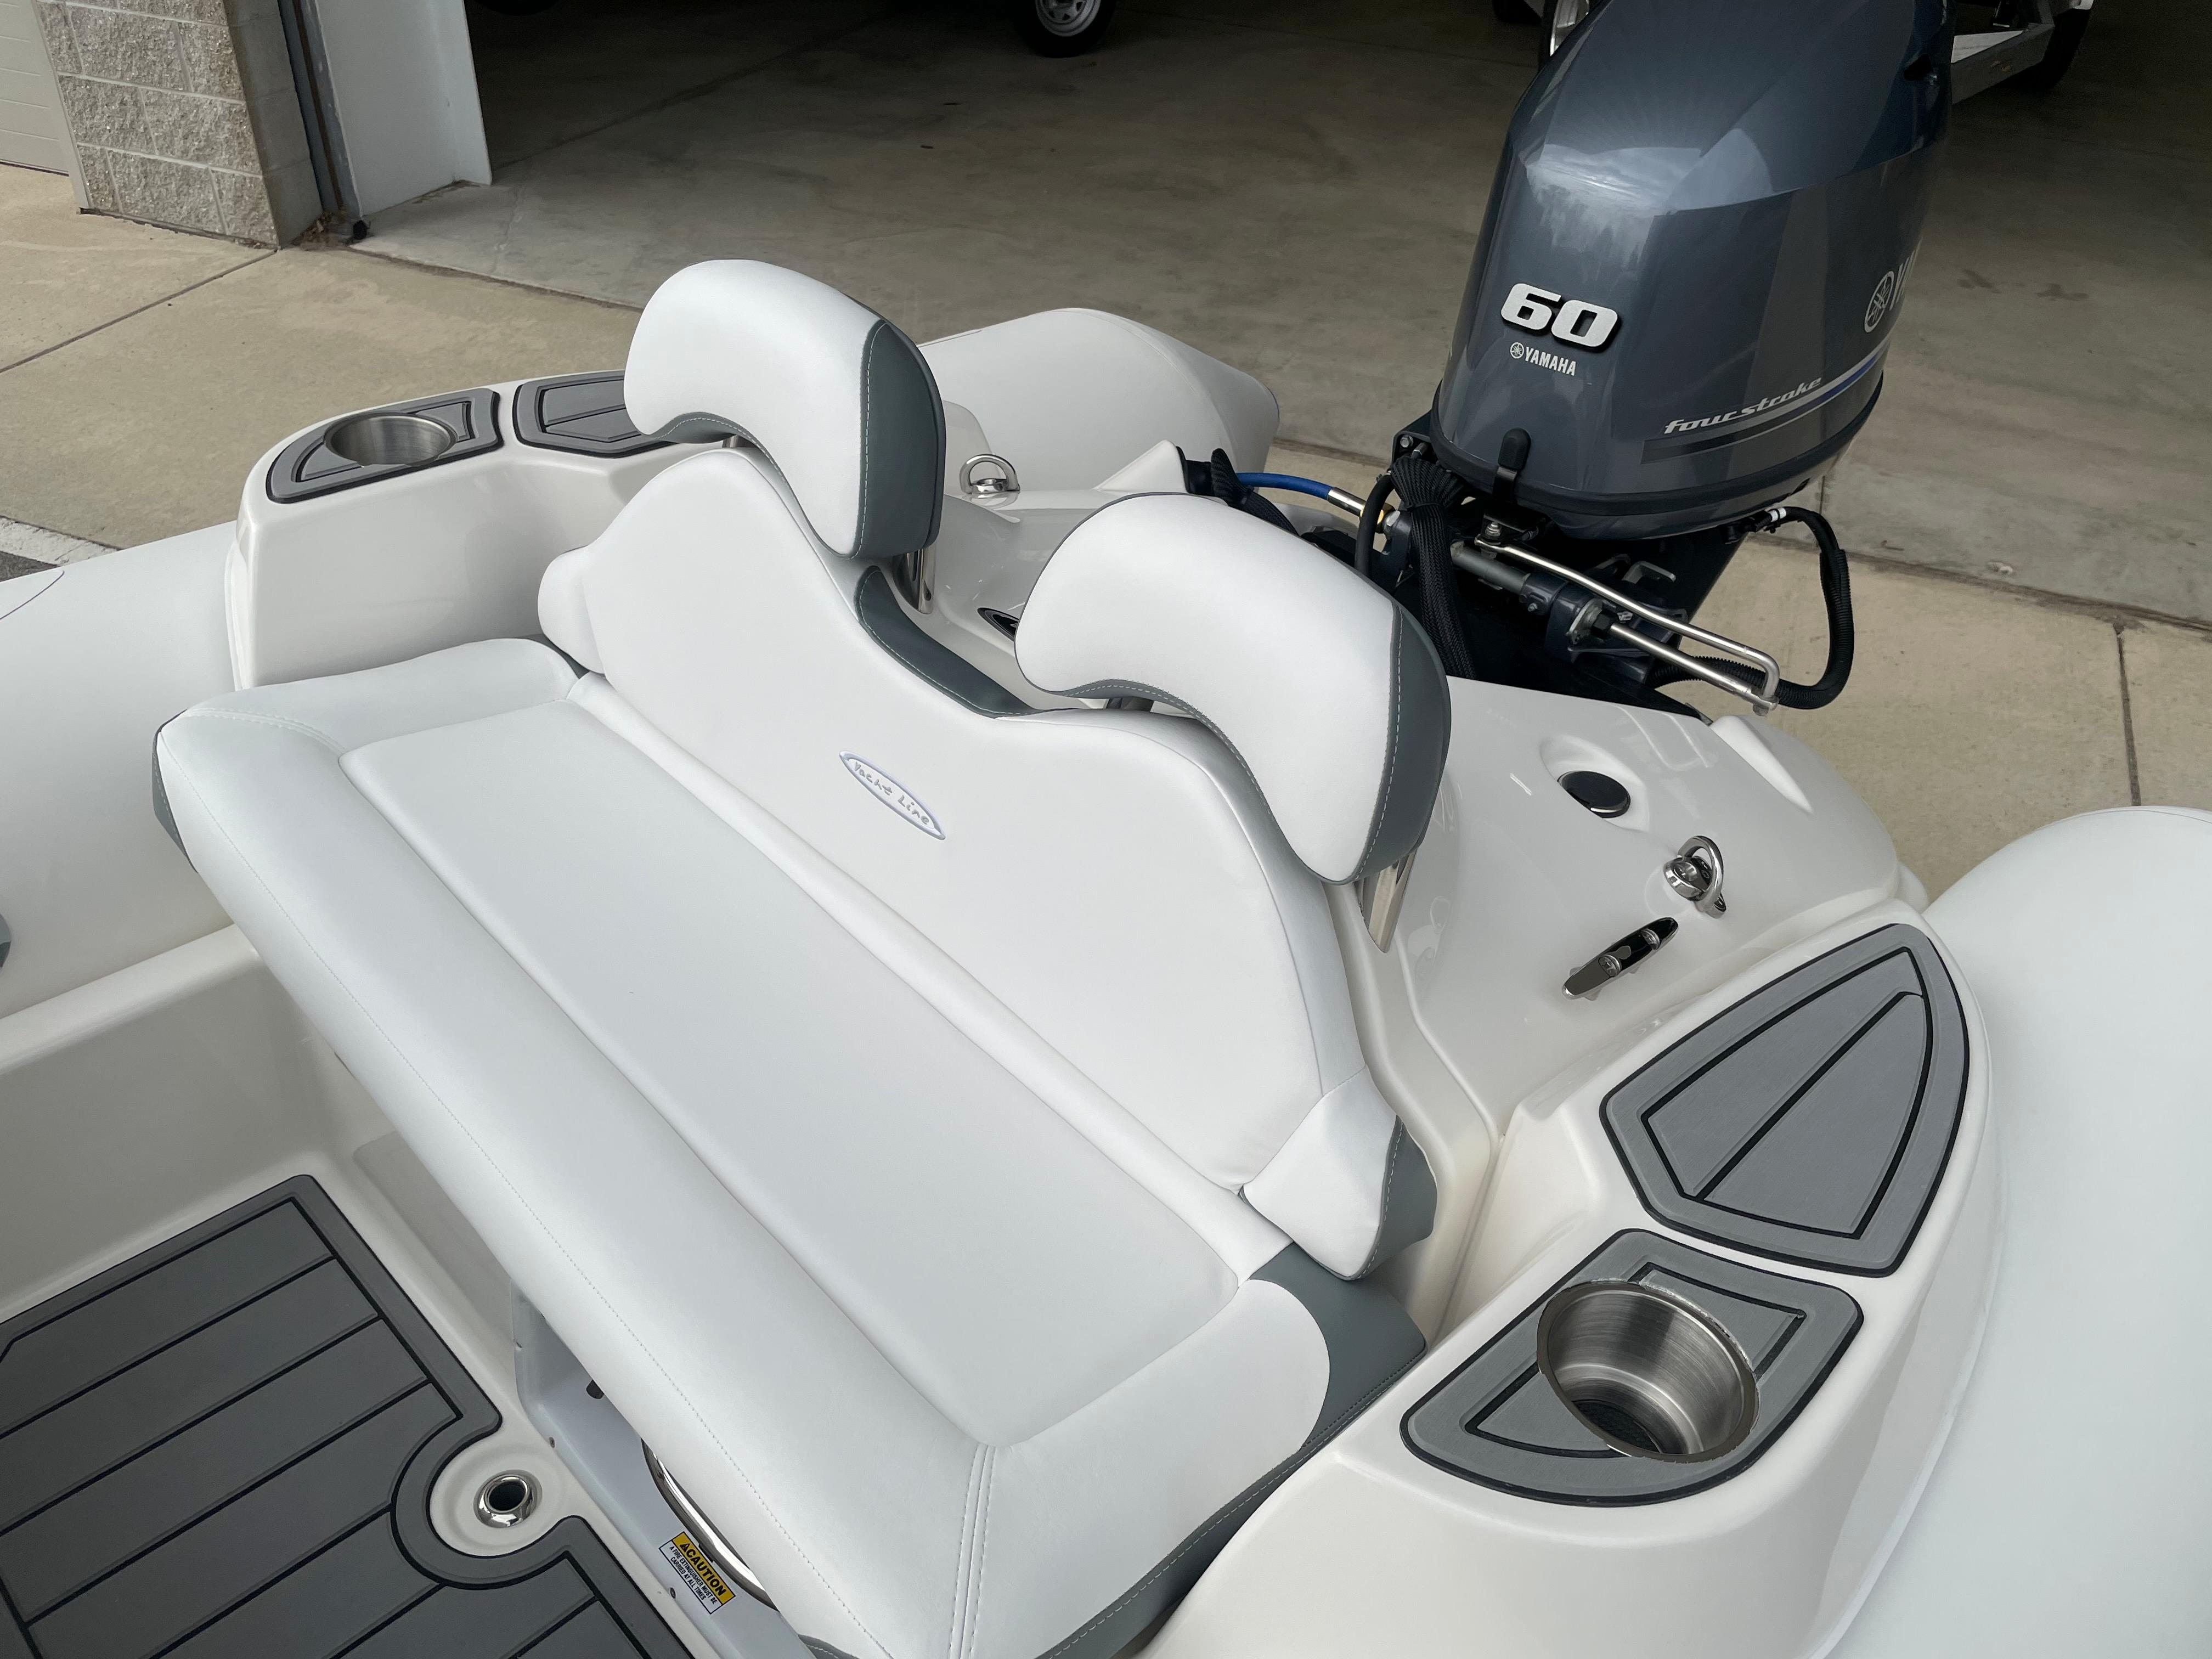 2022 Zodiac Yachtline 440 Deluxe NEO GL Edition 60hp On Order, Image 11